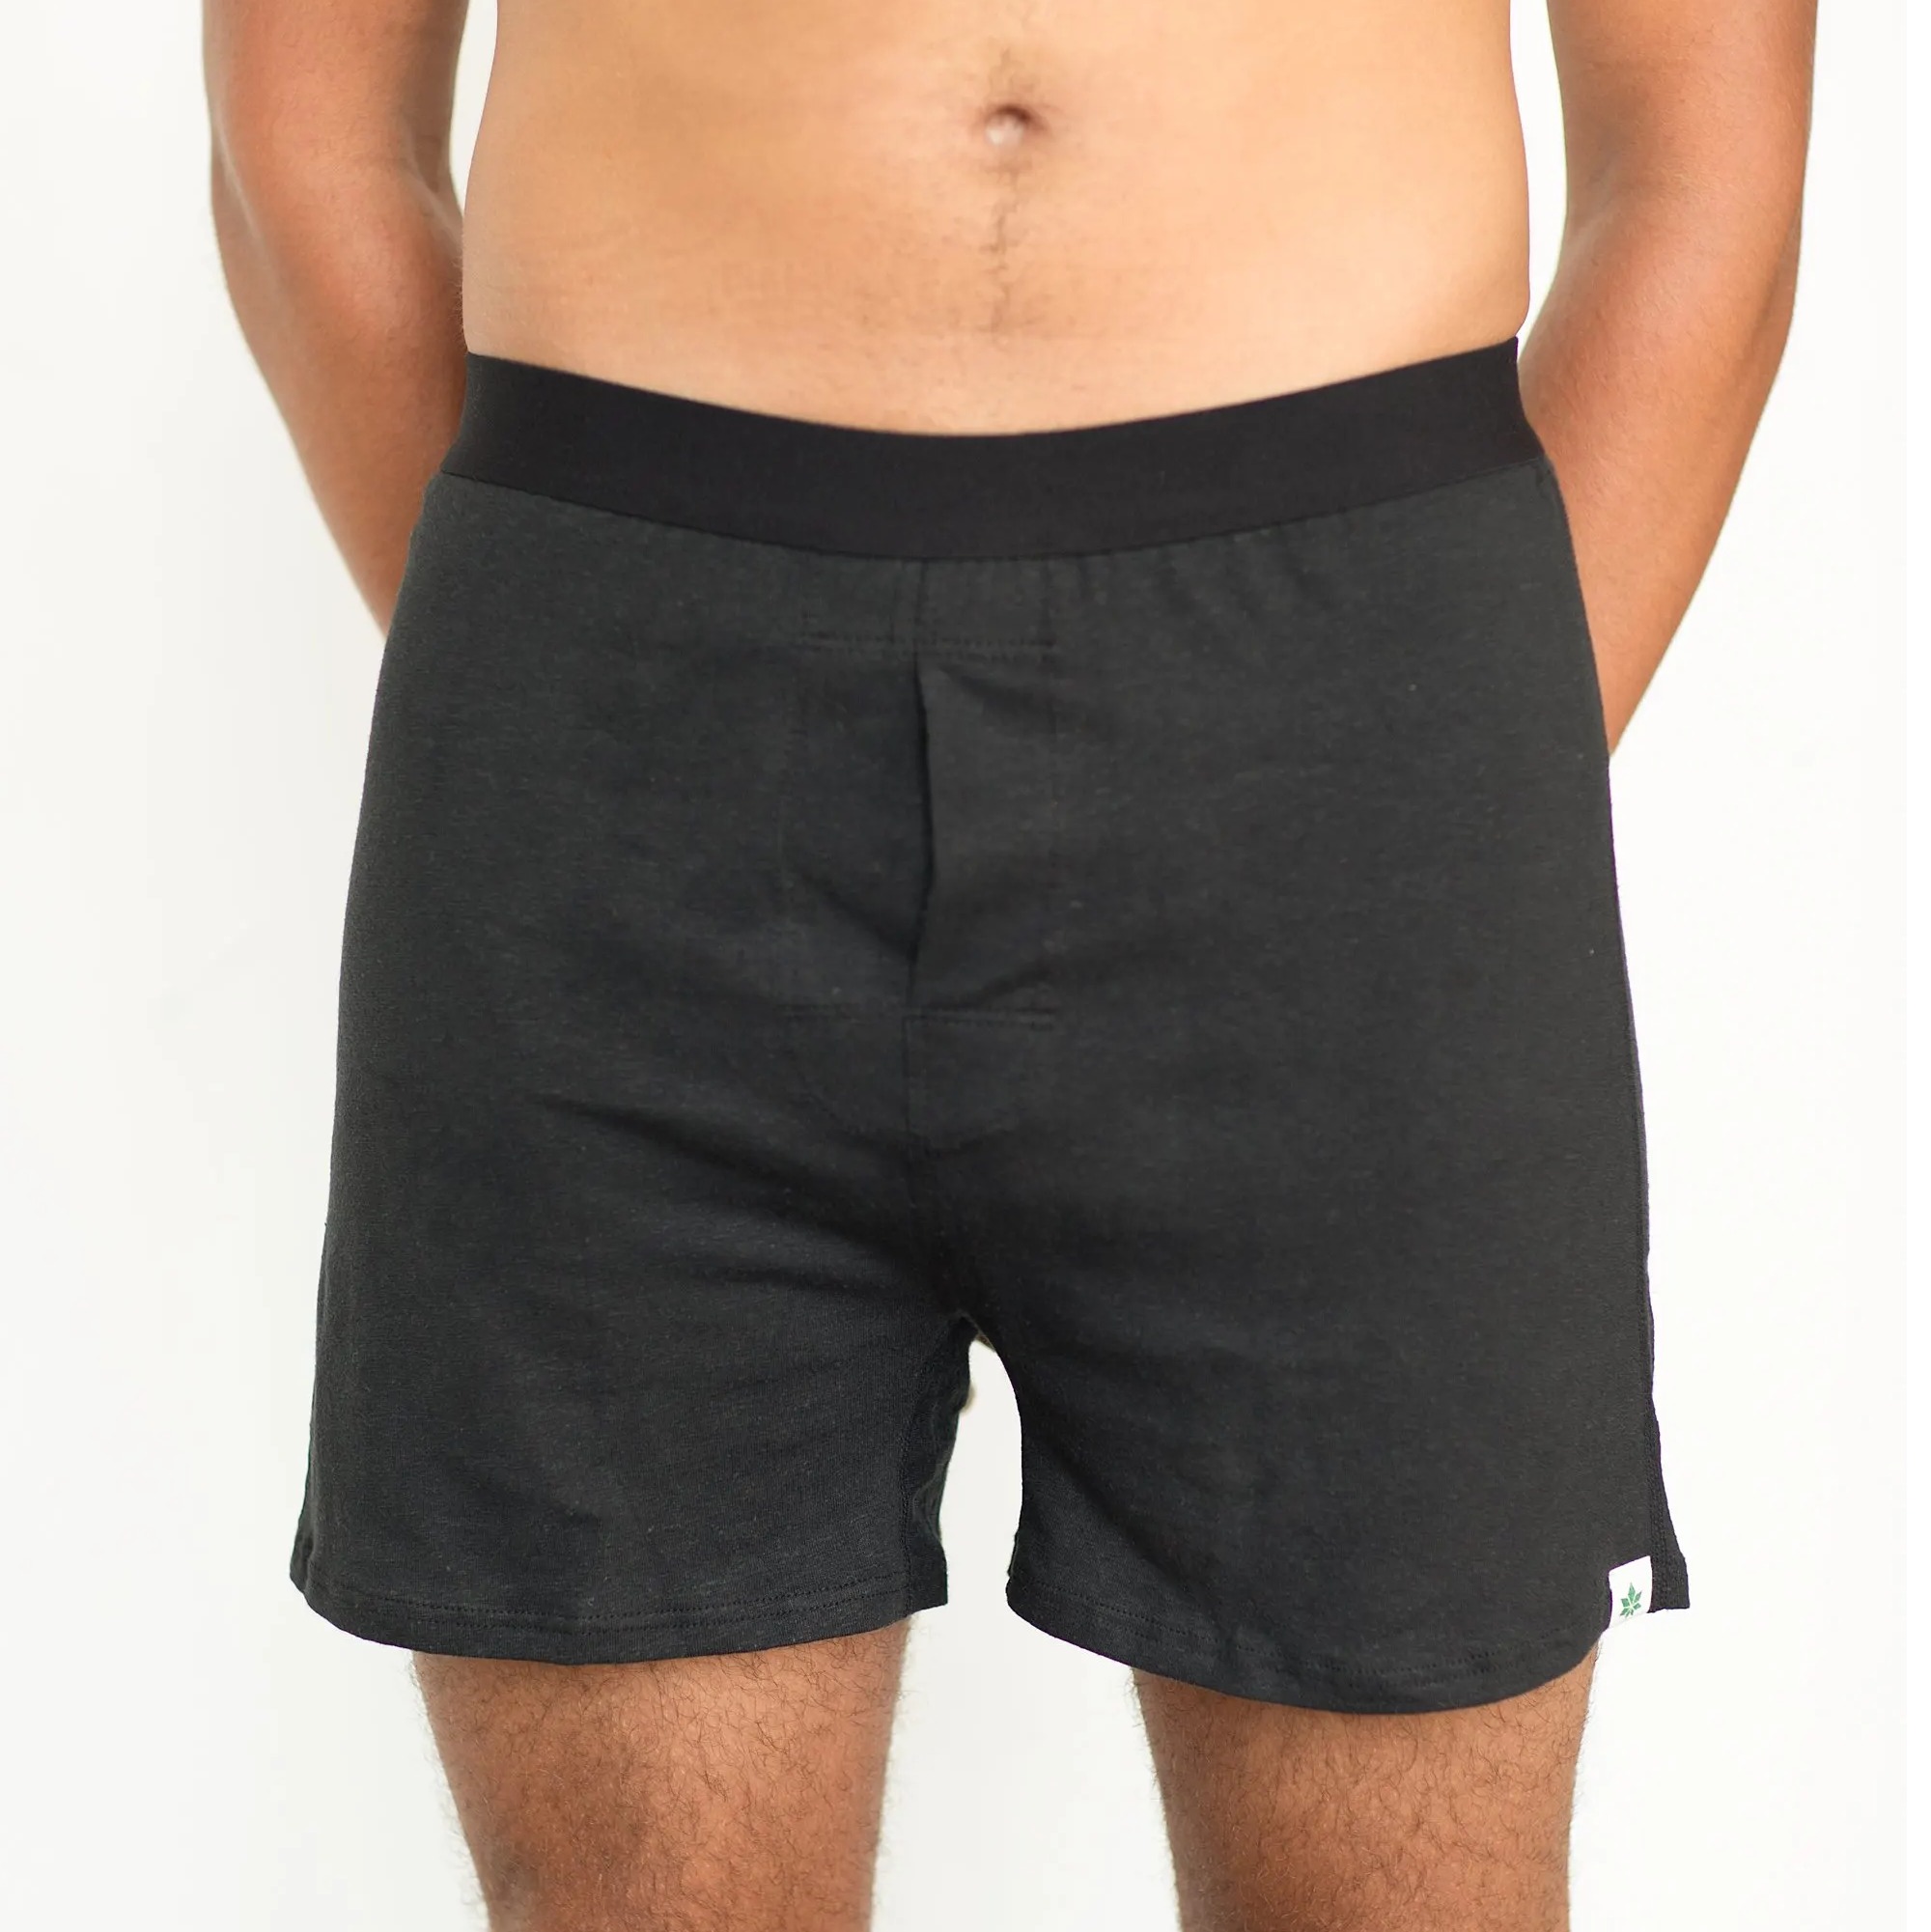 Comfortable weed boxers that are perfect for everyday